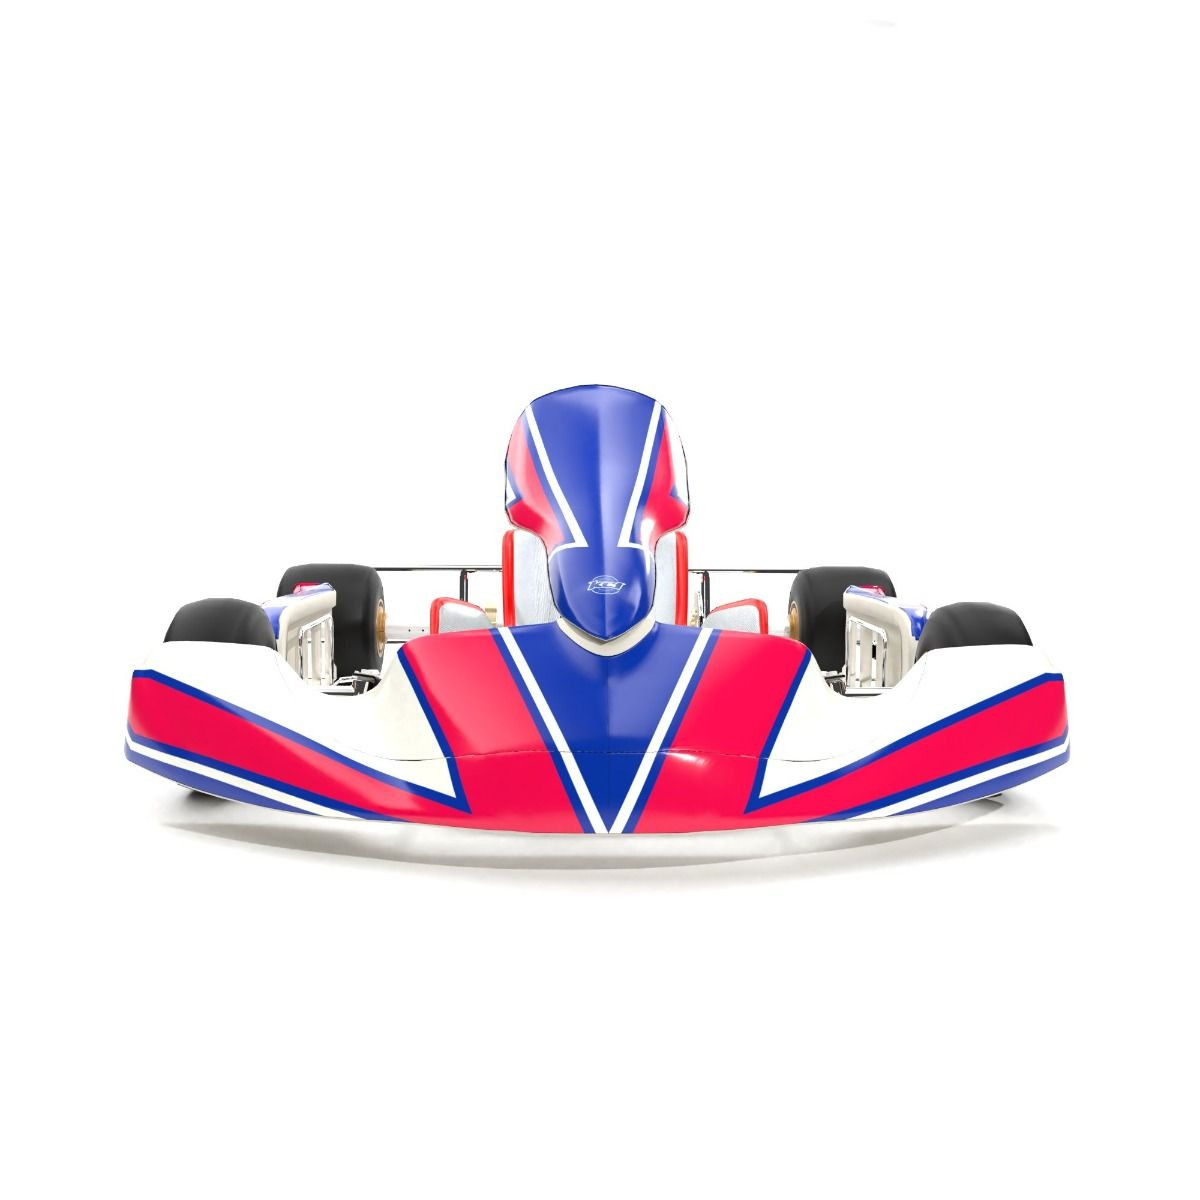 Kosmic 2019 Replica Kart Graphics Kit Front Low View